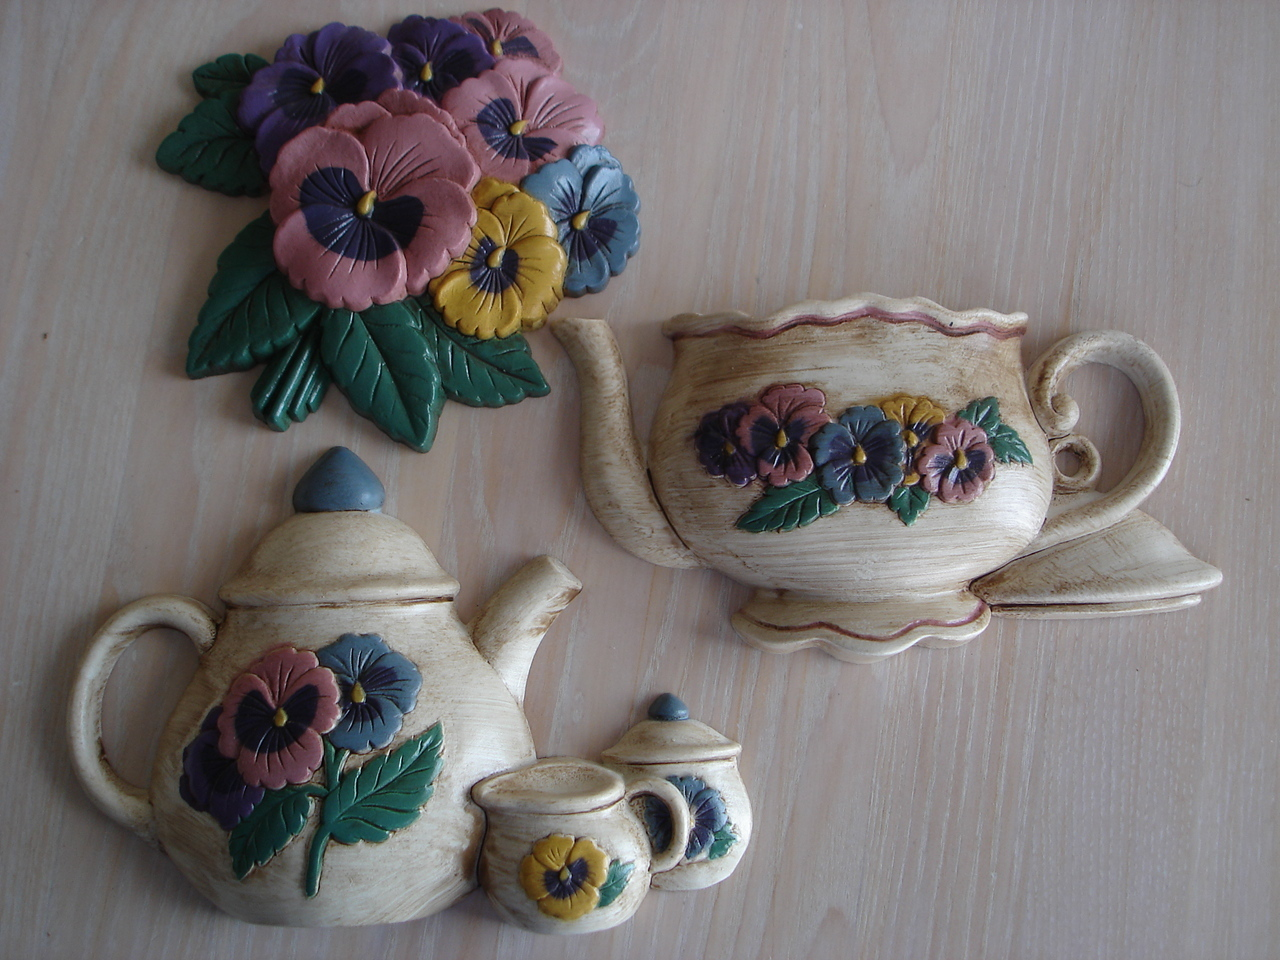 Home Interiors Pansies & Pots Wall Decor Plaques, 33201,2, &